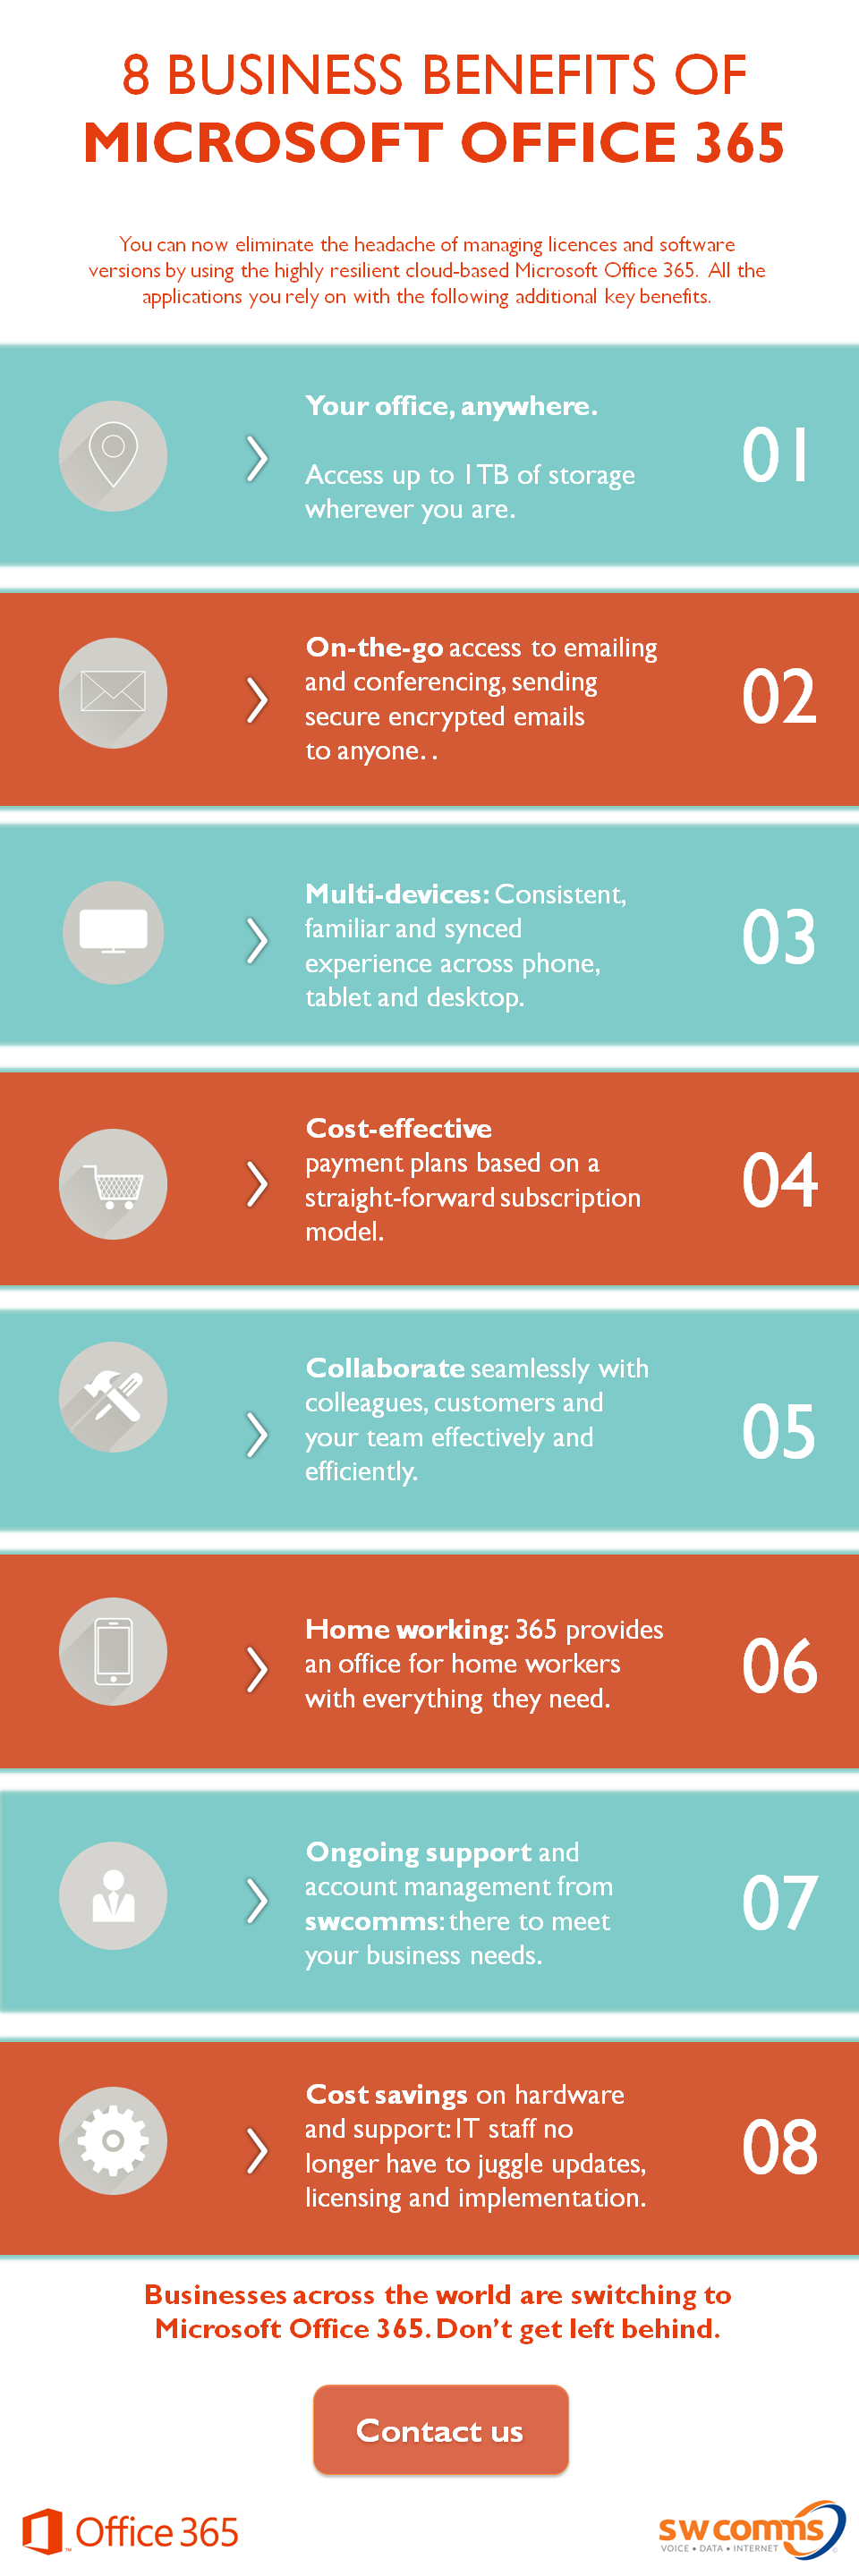 8 Business Benefits Of Microsoft Office 365